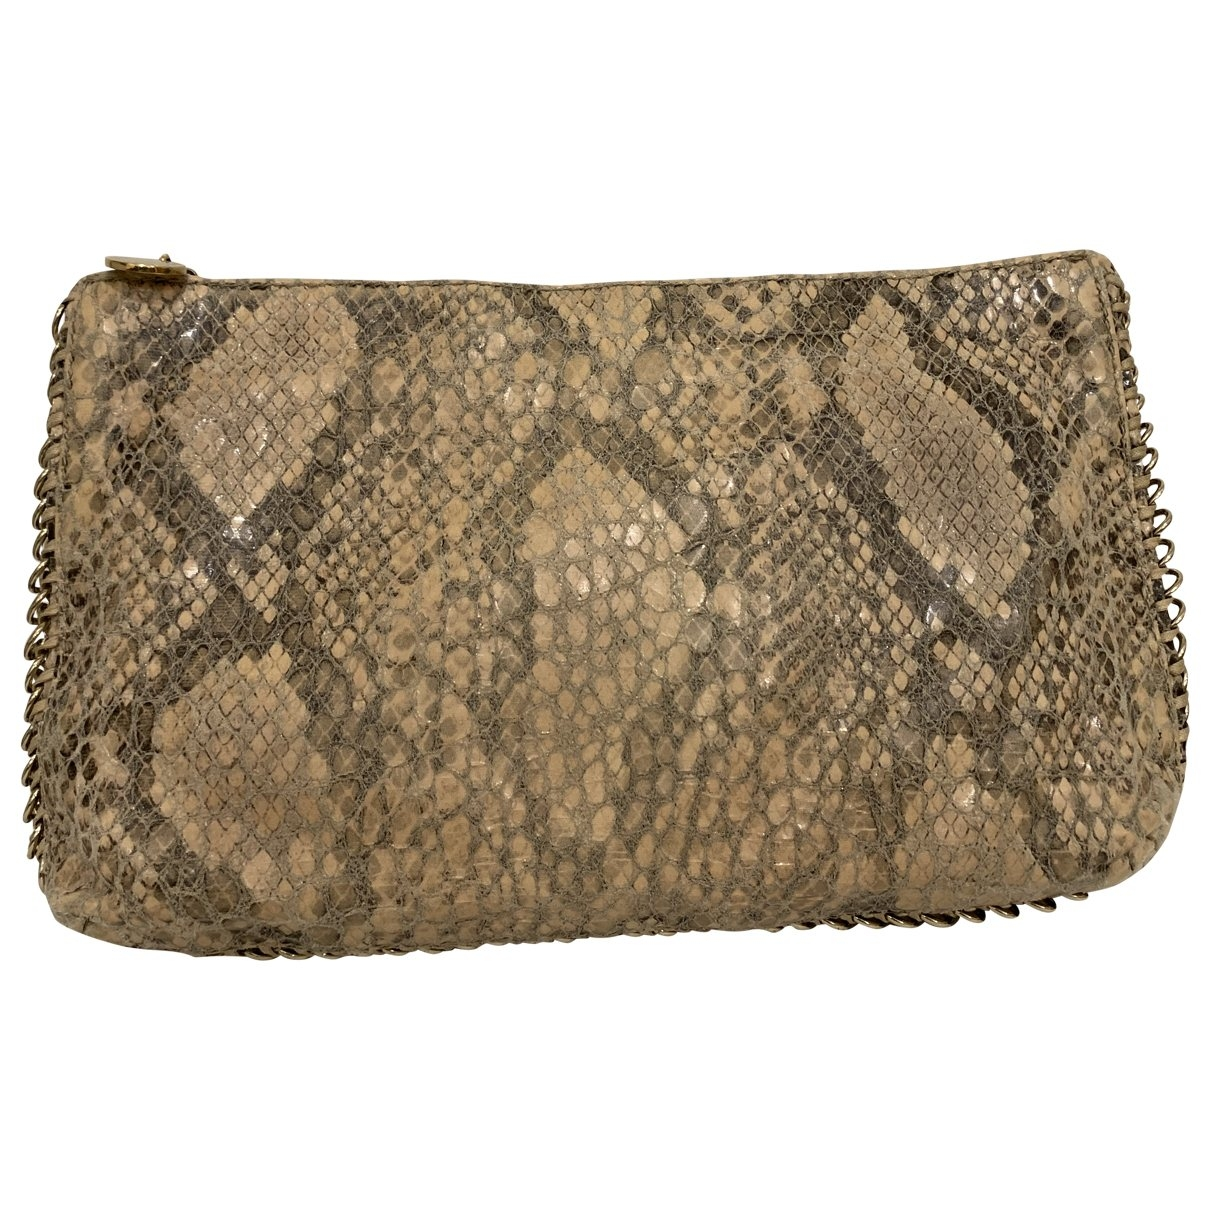 Stella Mccartney \N Beige Cloth Clutch bag for Women \N